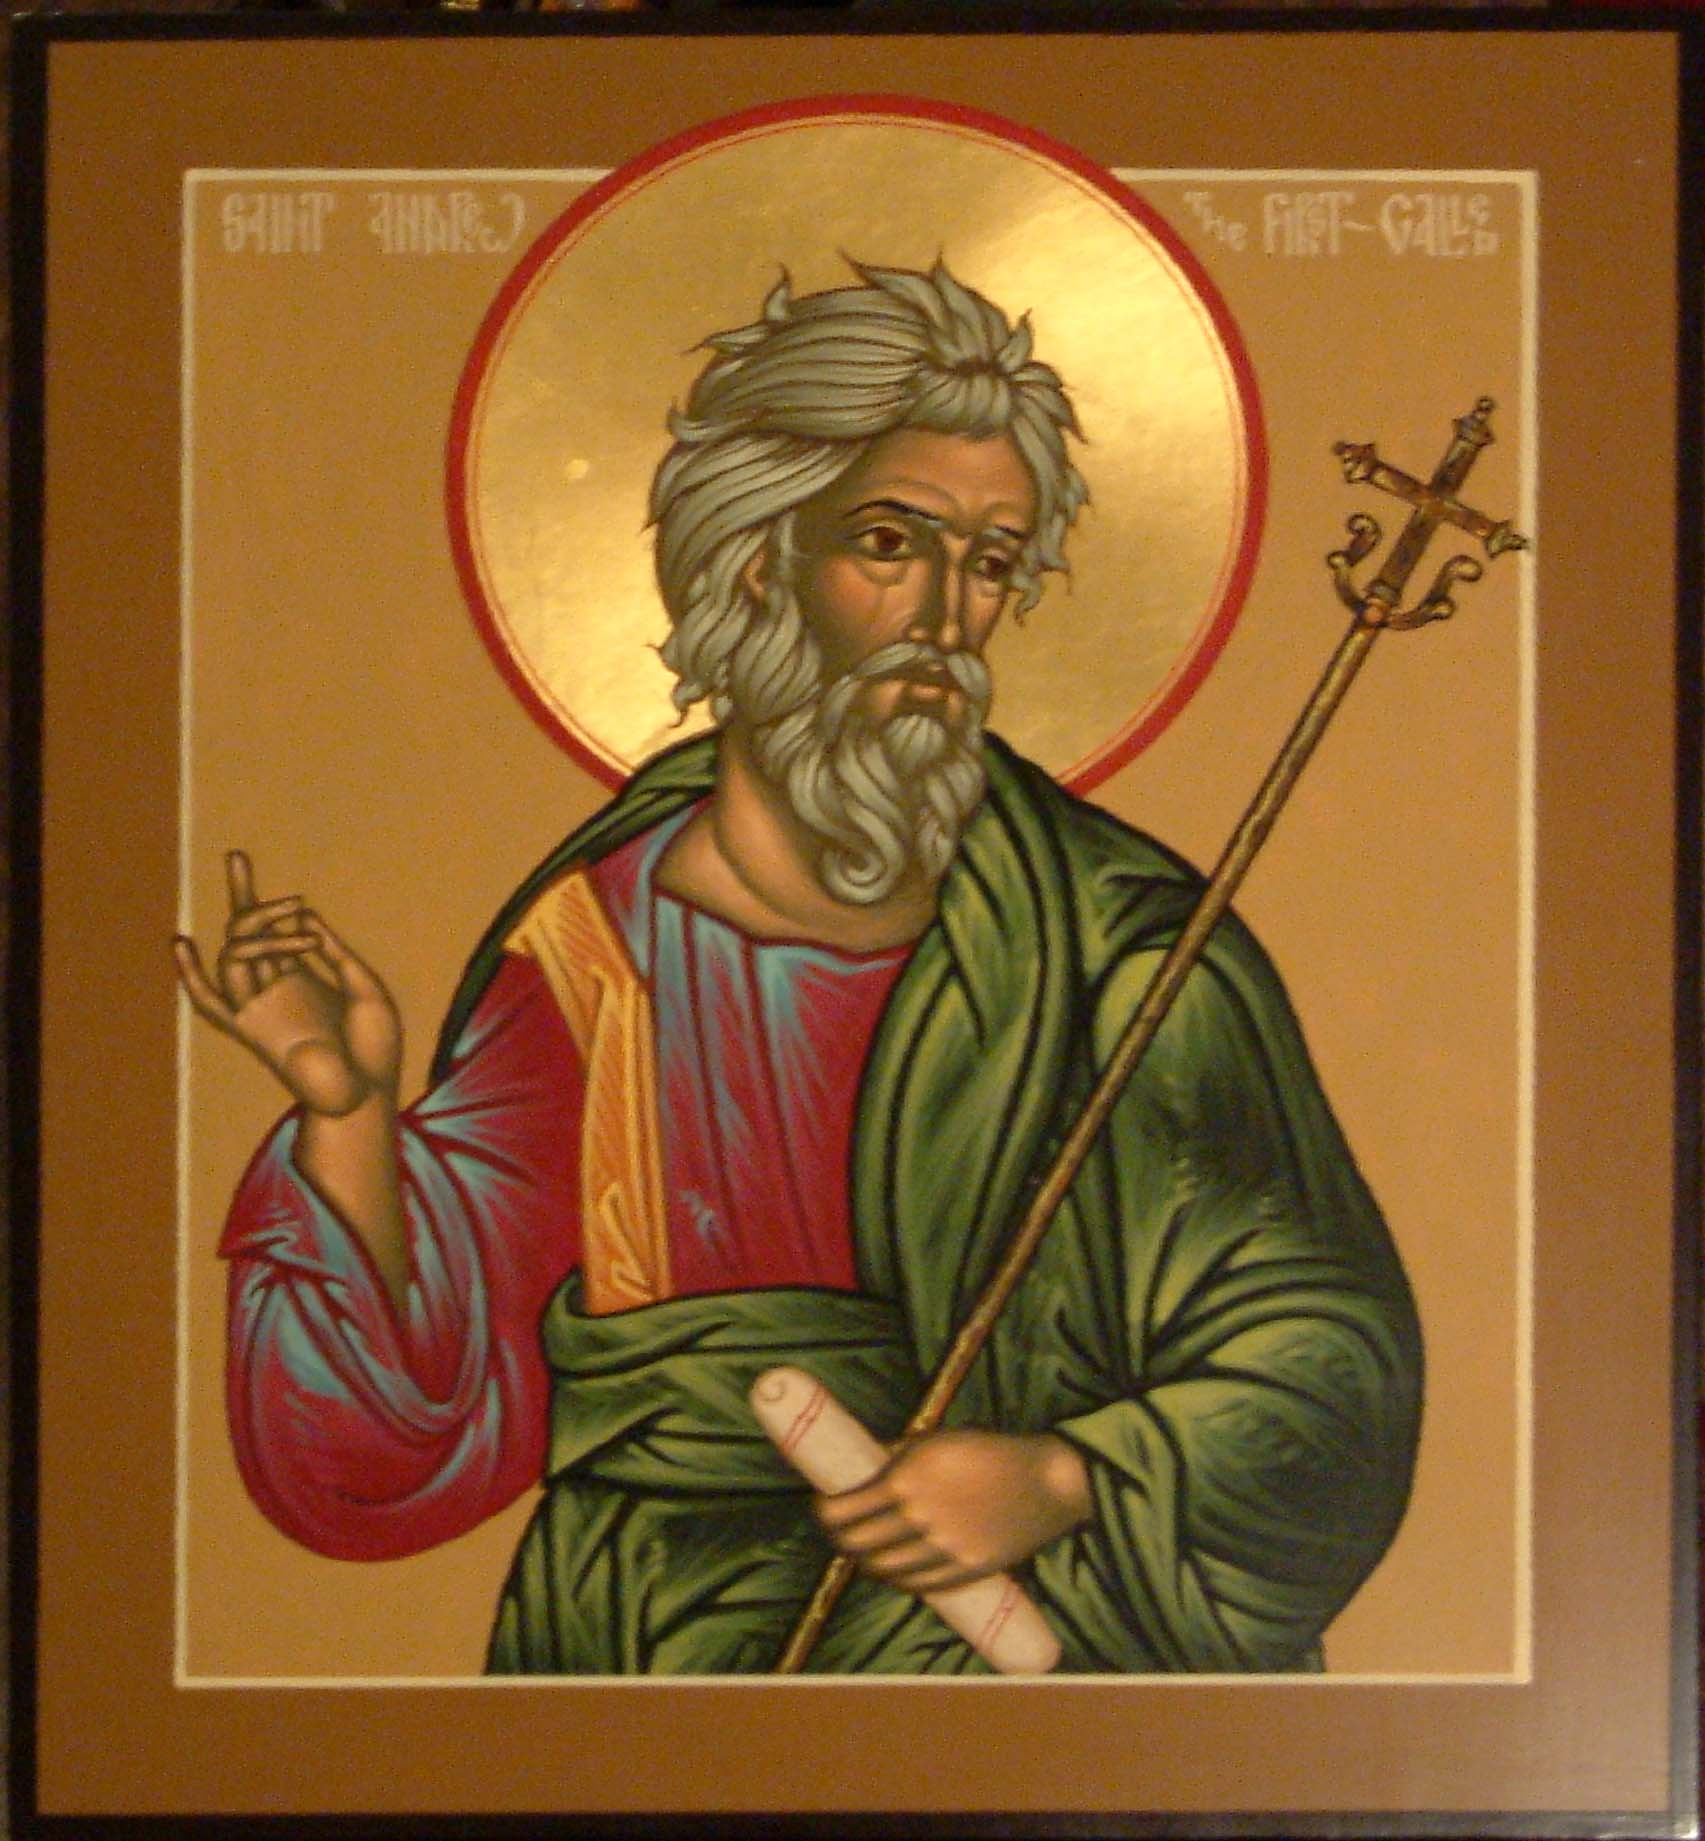 November 30, 2014 </br>25th Sunday after Pentecost, Tone 8 </br>Holy and All-Praiseworthy Apostle Andrew the First-Called